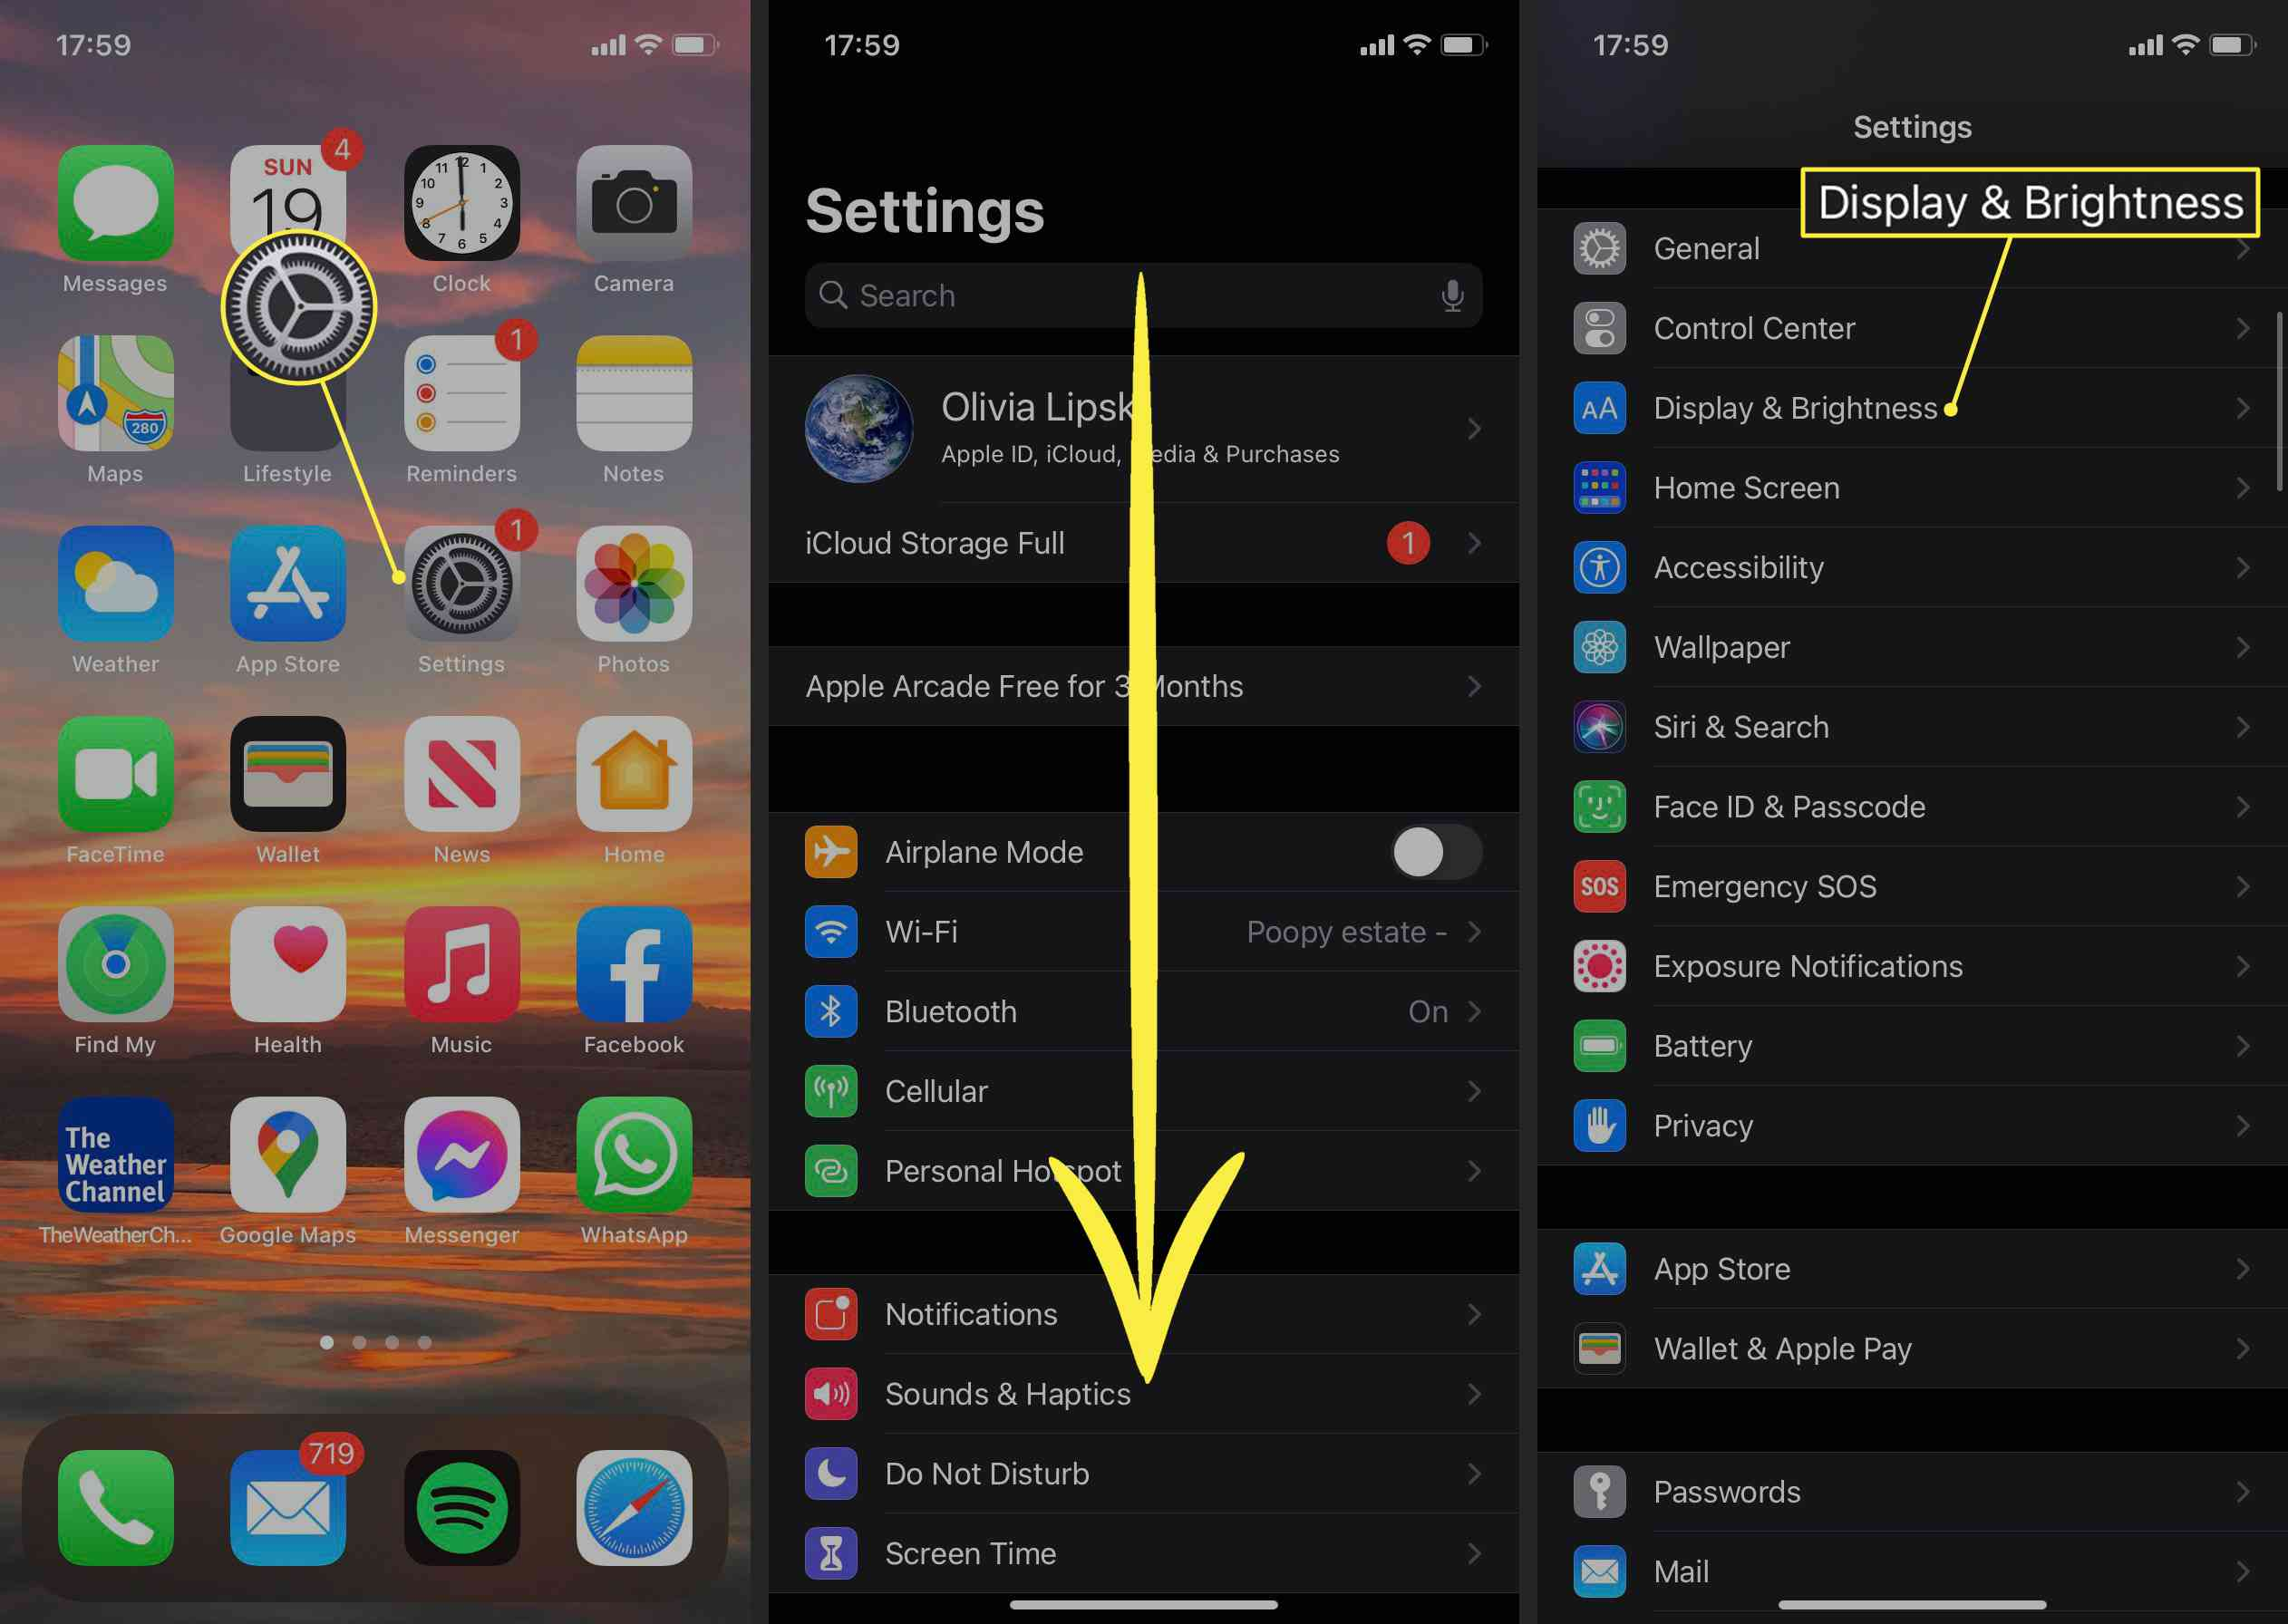 iPhone Settings app, down arrow, and Display and Brightness highlighted on iOS